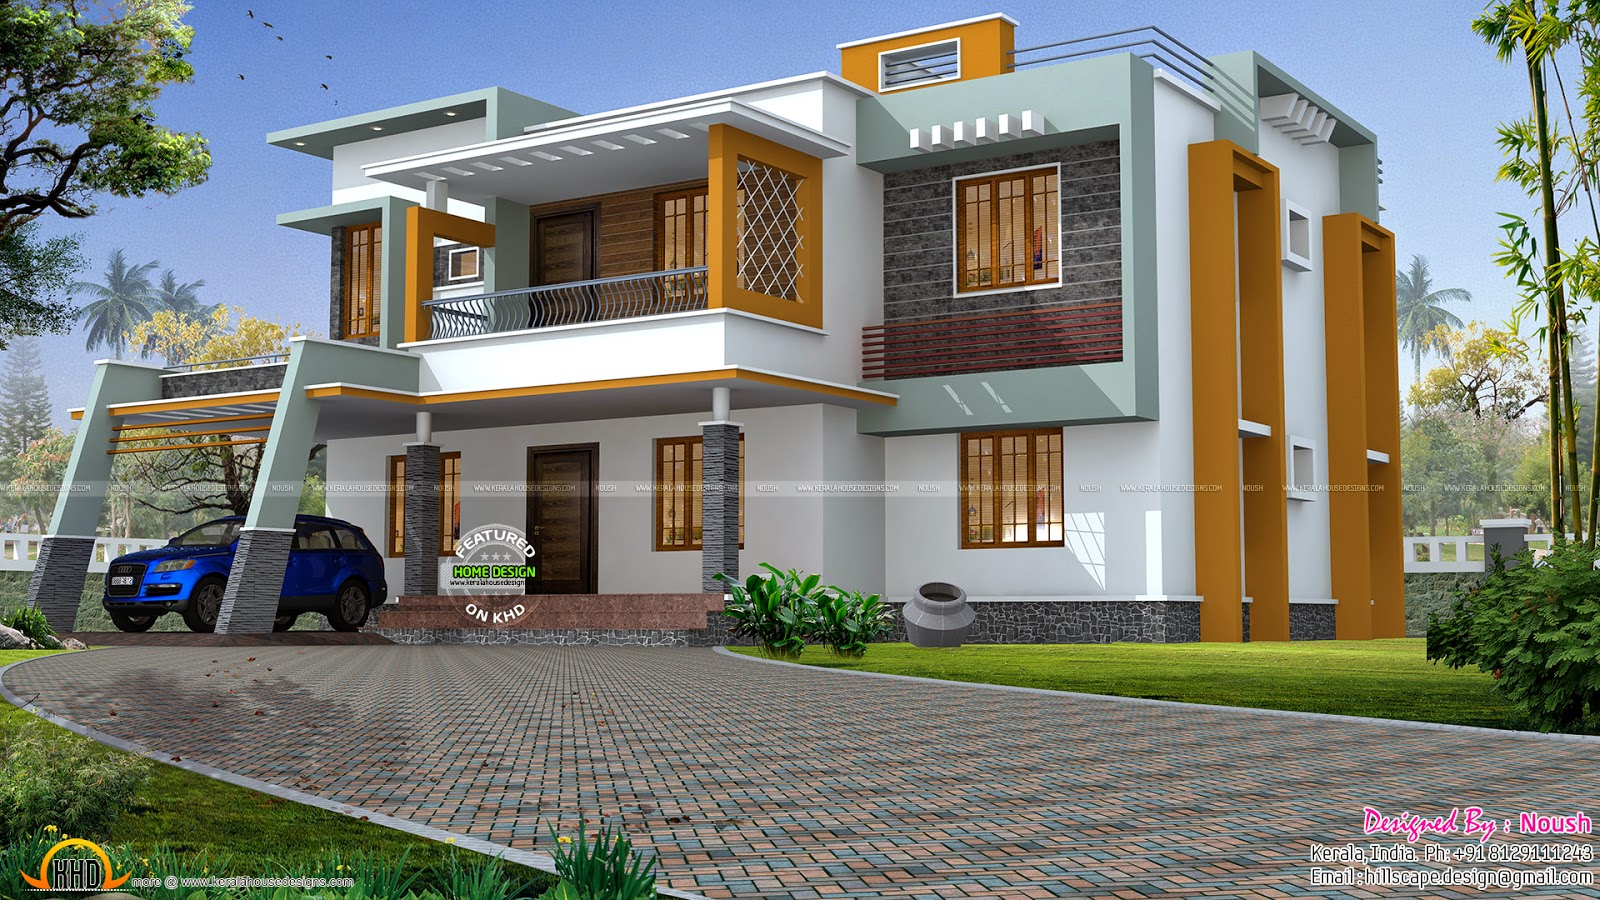 Box style house kerala home design and floor plans for Types of house plans